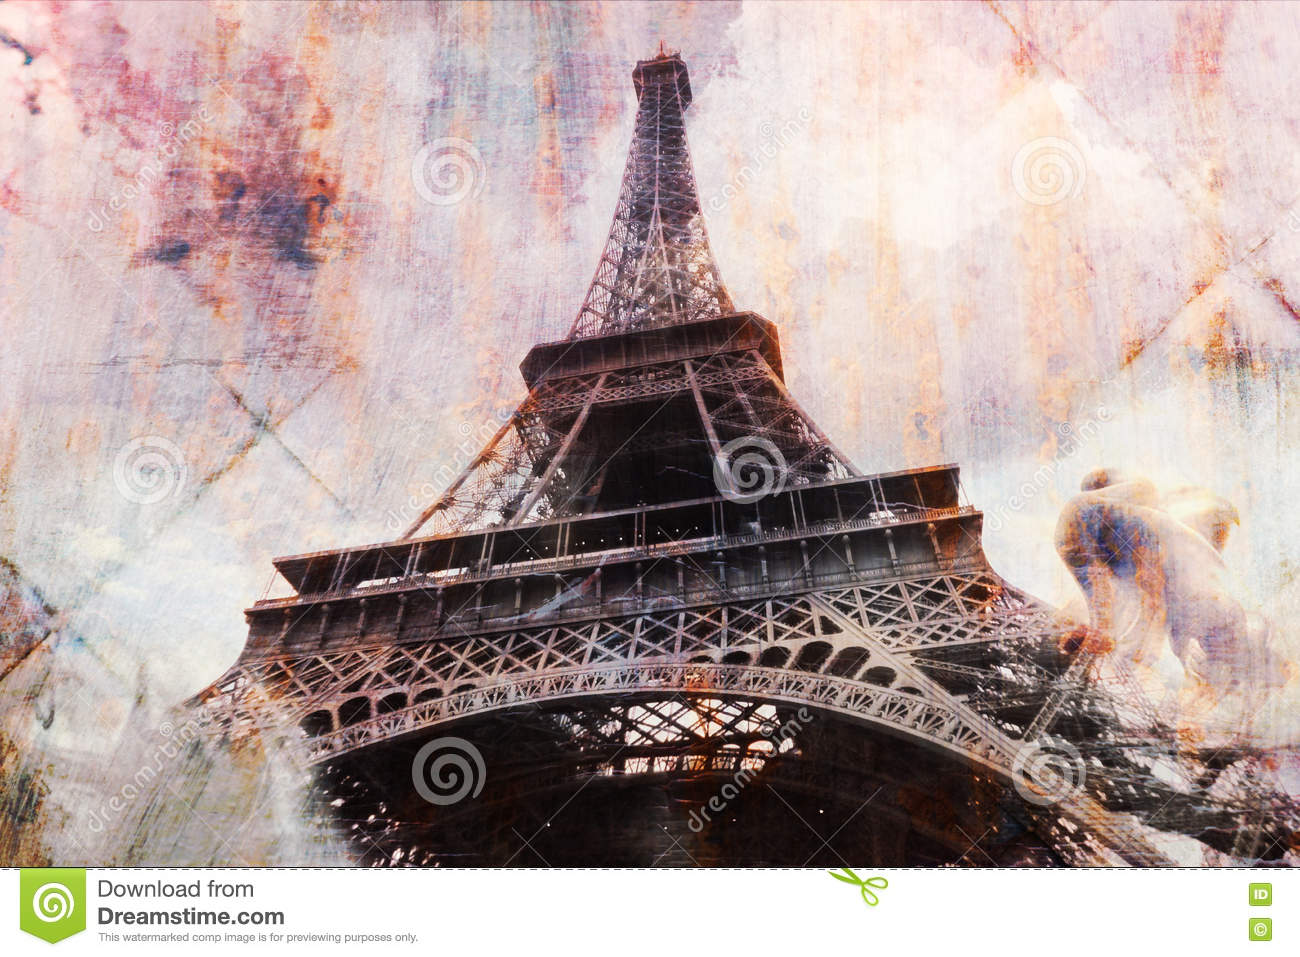 Abstract Digital Art Of Eiffel Tower In Paris, Tile